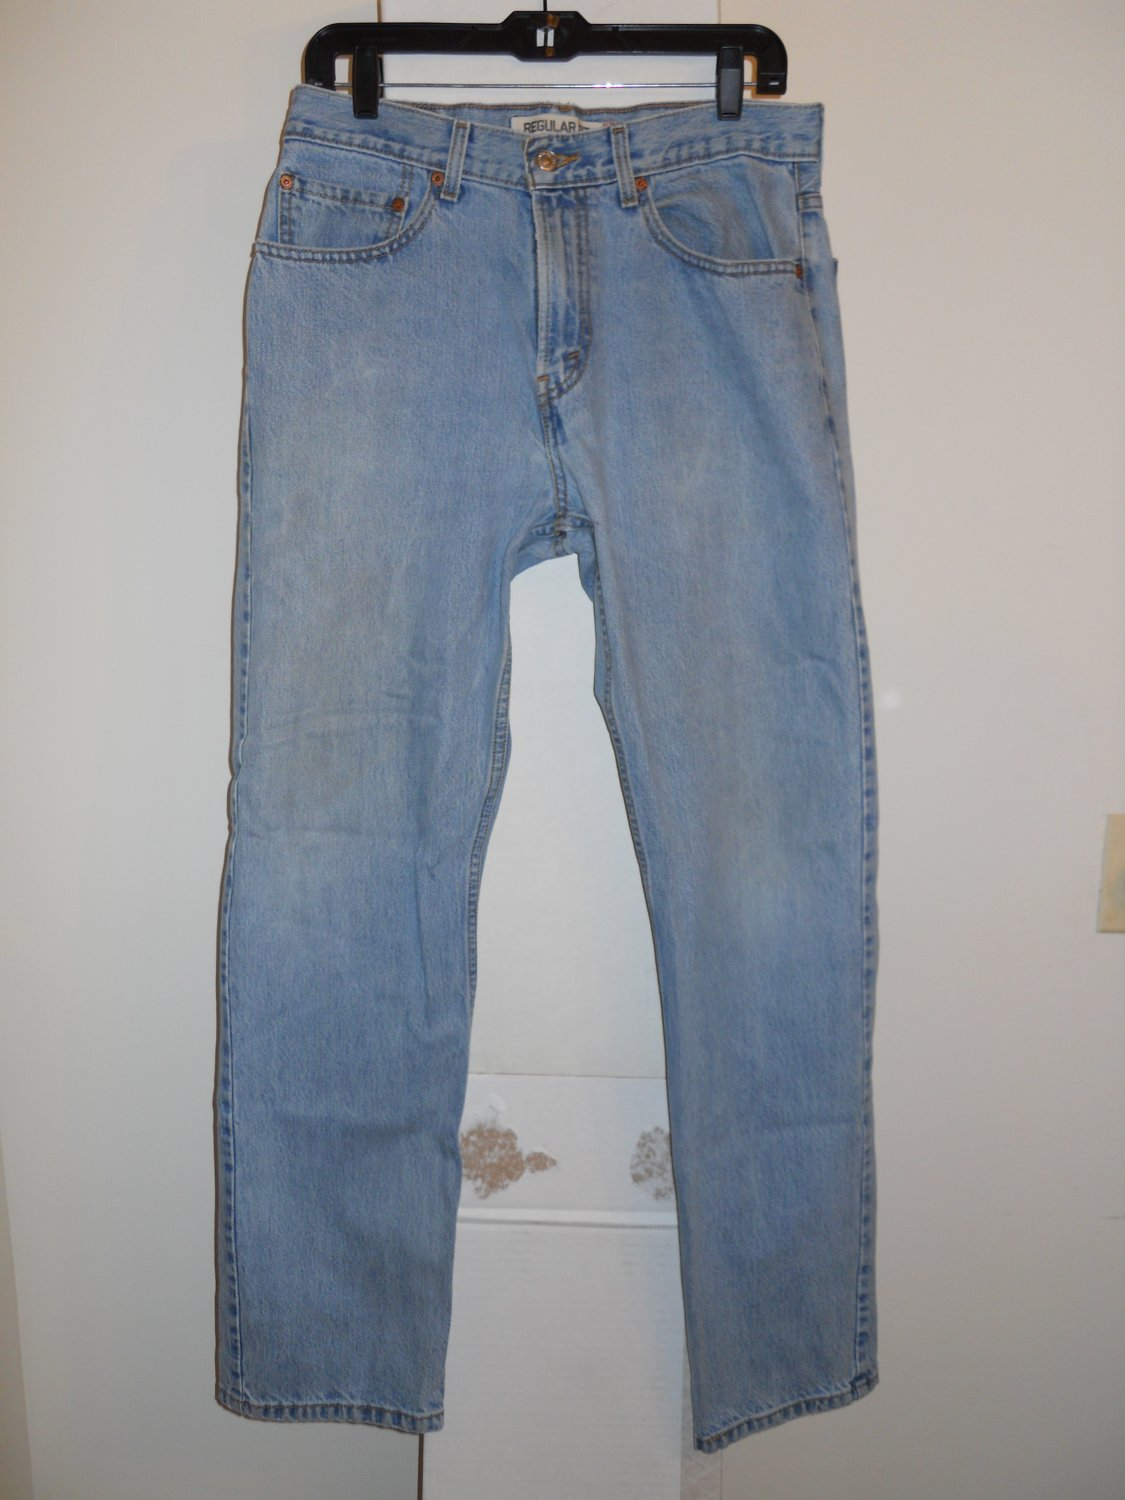 Levi 505 Regular Fit blue denim jeans men's 32x32 torn seat